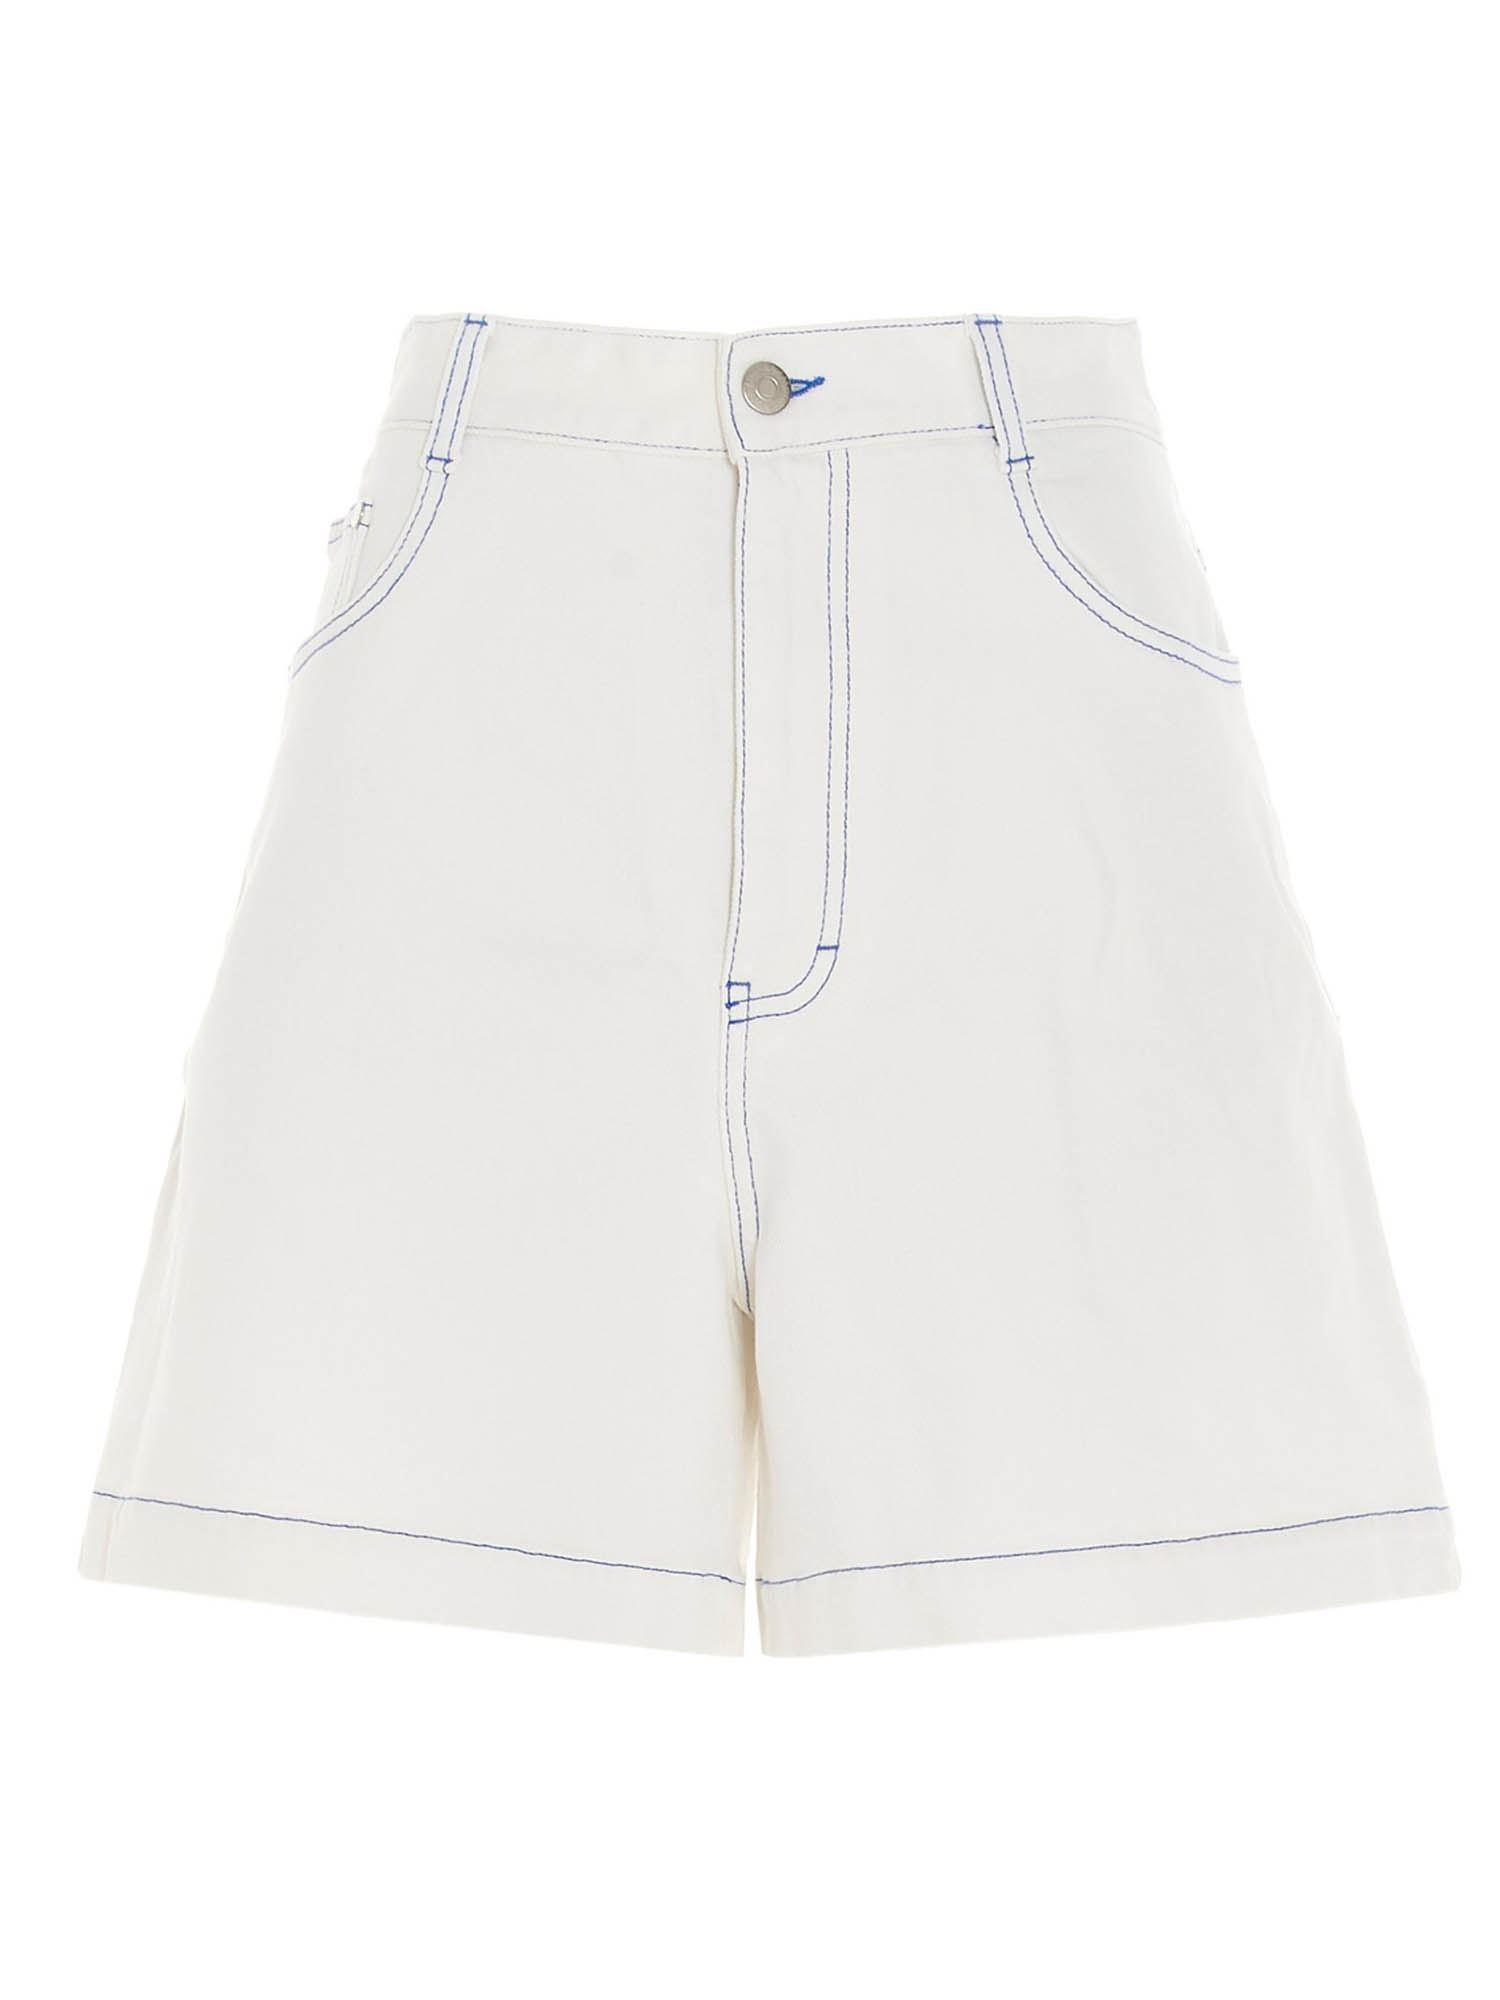 Stella Mccartney STELLA MCCARTNEY CONTRASTING STITCHING BERMUDA SHORTS IN WHITE